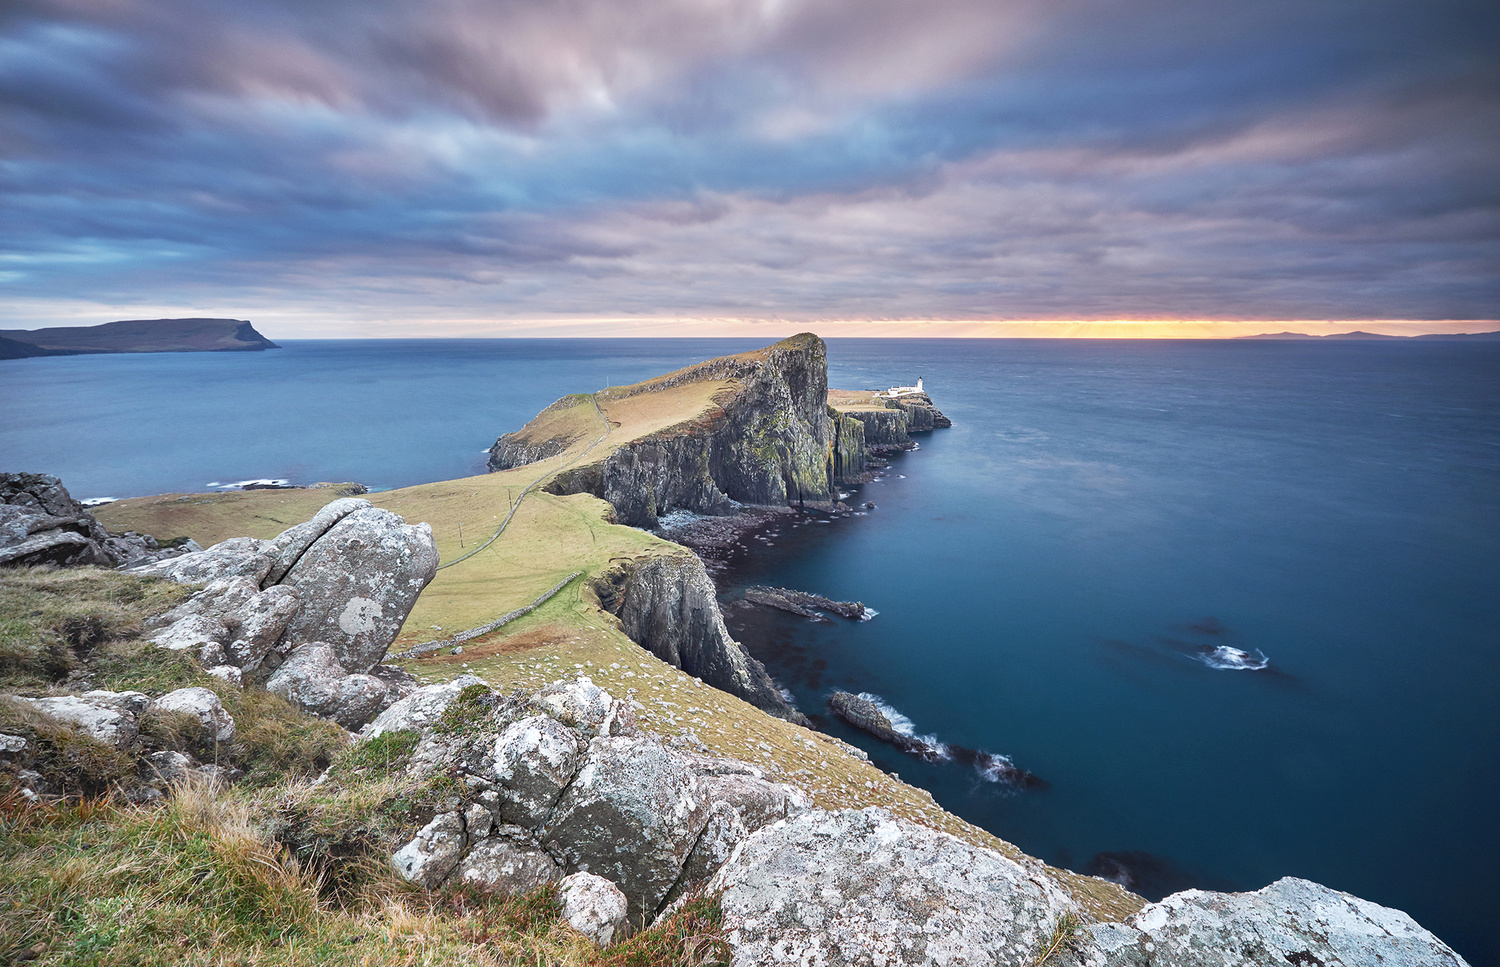 Sunset on the Neist Point lighthouse by Lionel Fellay